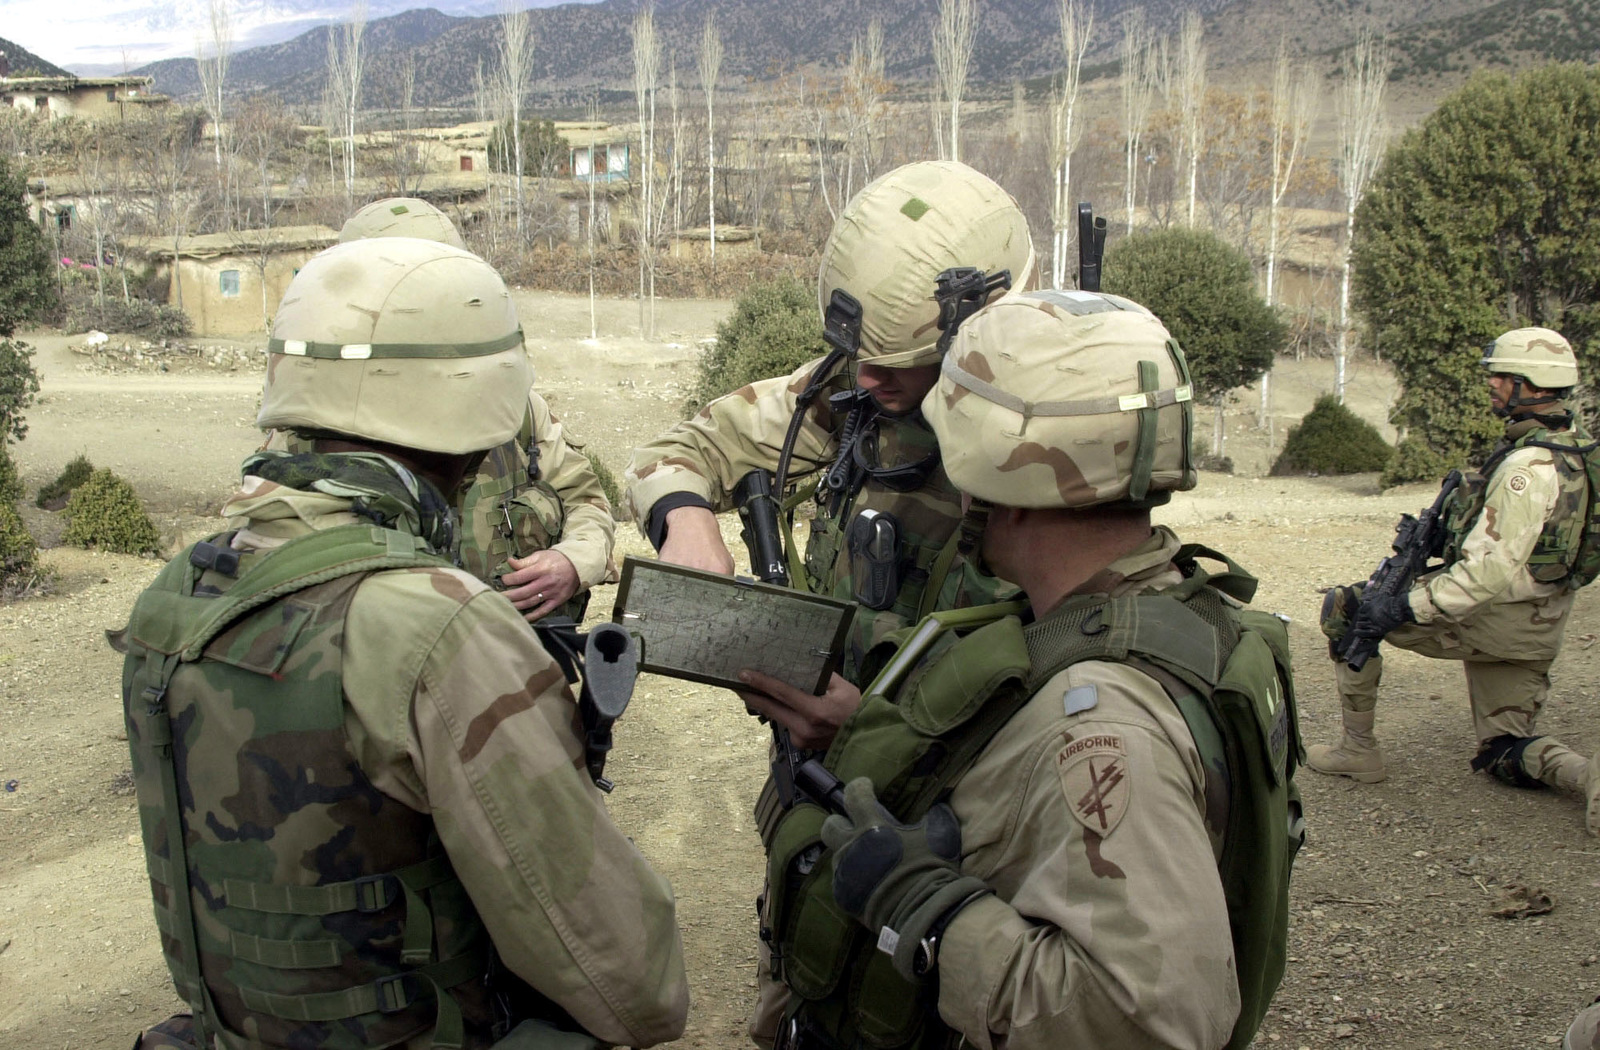 """Special Forces Group (SFG) soldiers of """"C"""" Company, 1ST Battalion, 504th Parachute Infantry Regiment (PIR), armed with 5.56mm M4 Carbines and equipped with interceptor body armor, knee pads, use tactical satellite telephones, while conducting a search for suspected Taliban in the city of Naray, in support of ENDURING FREEDOM"""